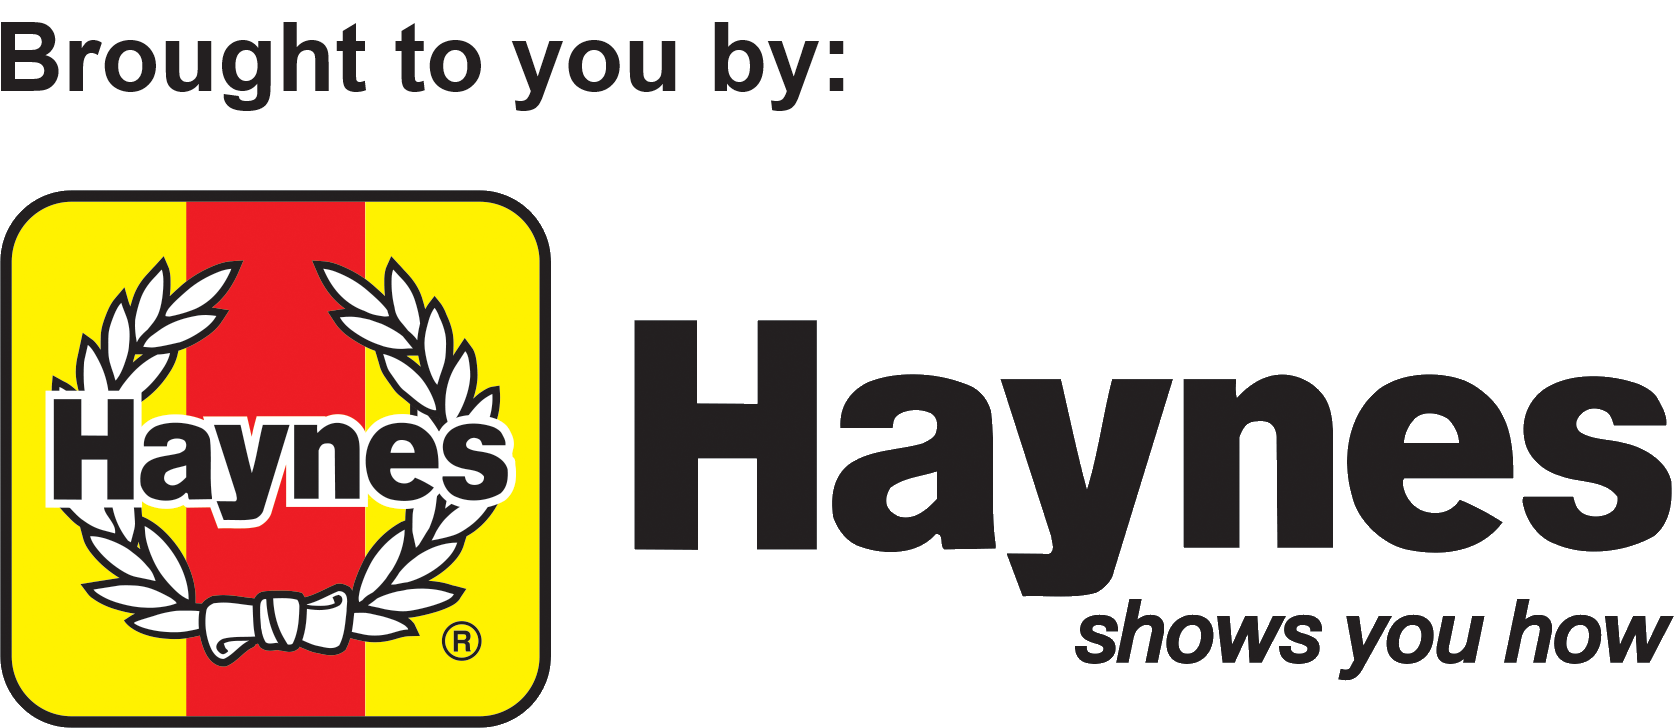 Haynes manuals logo